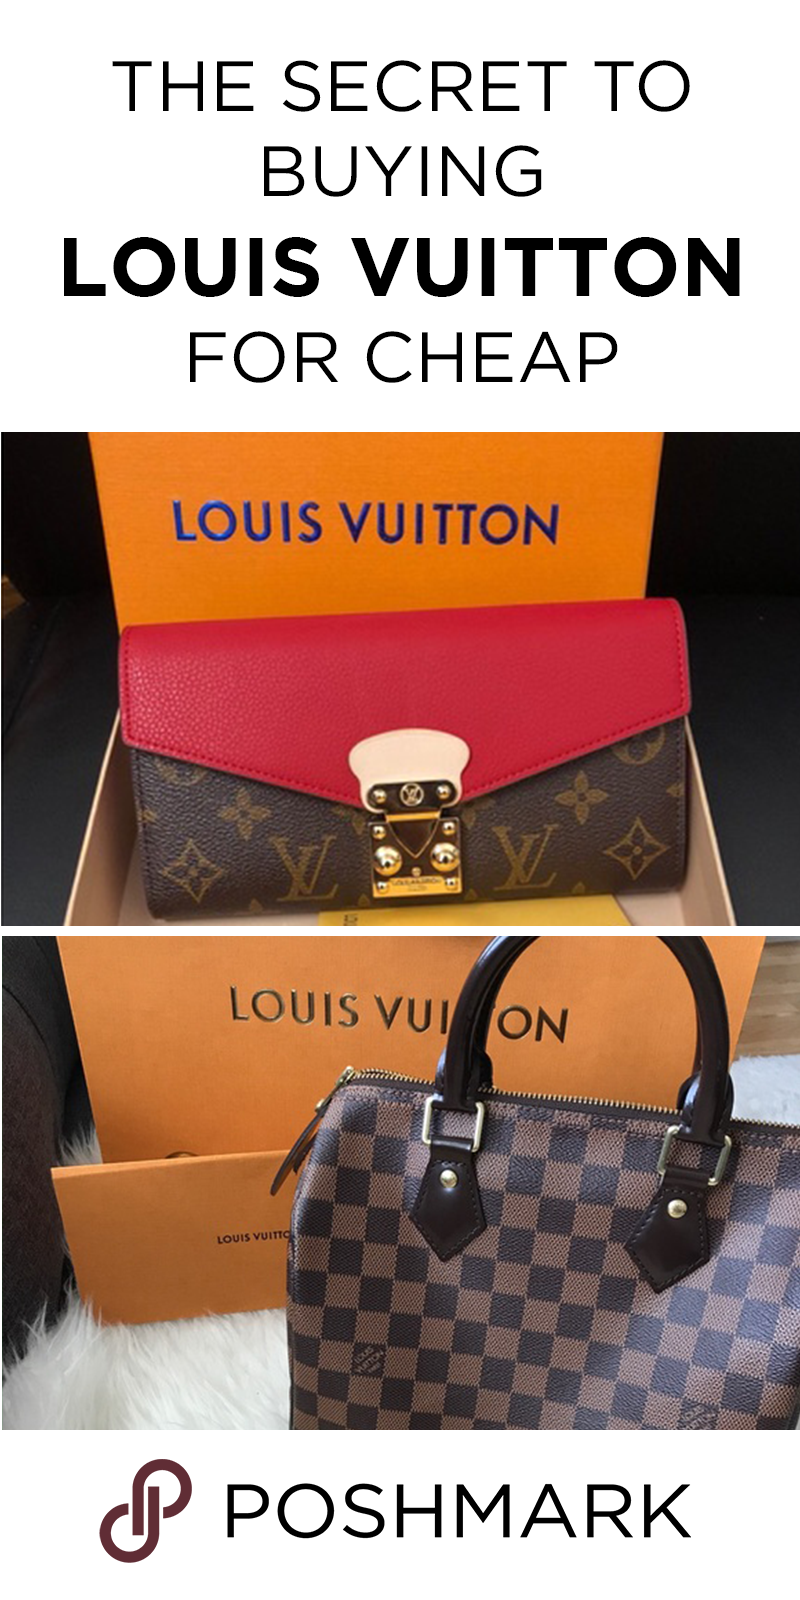 ab2b681f255e Buy pre-owned Louis Vuitton handbags for cheap on Poshmark. Download the  app today to shop more designer luxury brands.